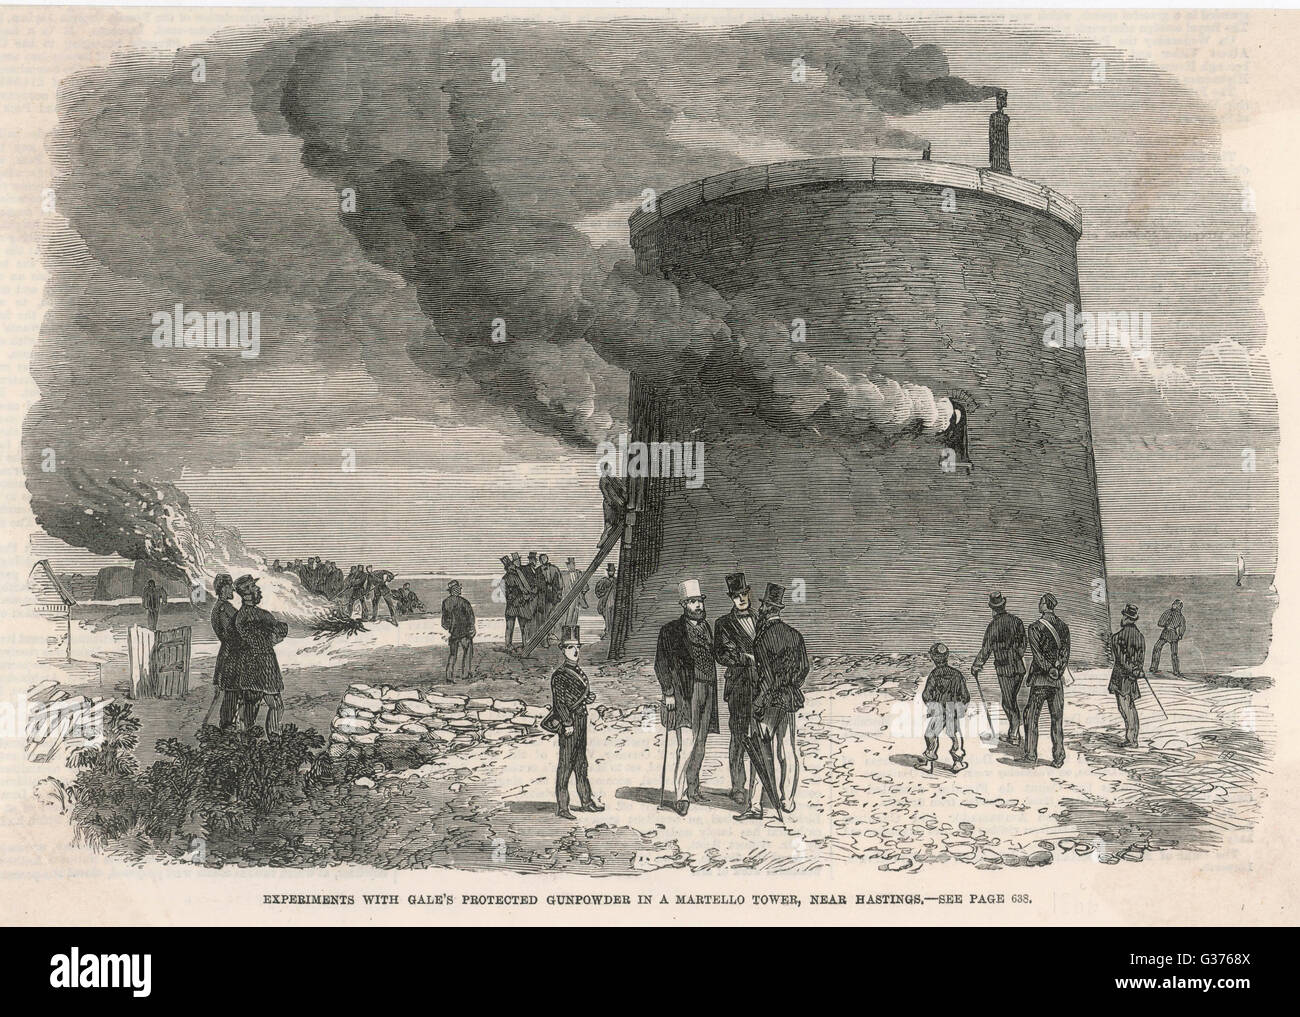 Experiments with Gale's  protected gunpowder in a  Martello Tower near Hastings        Date: 1866 - Stock Image